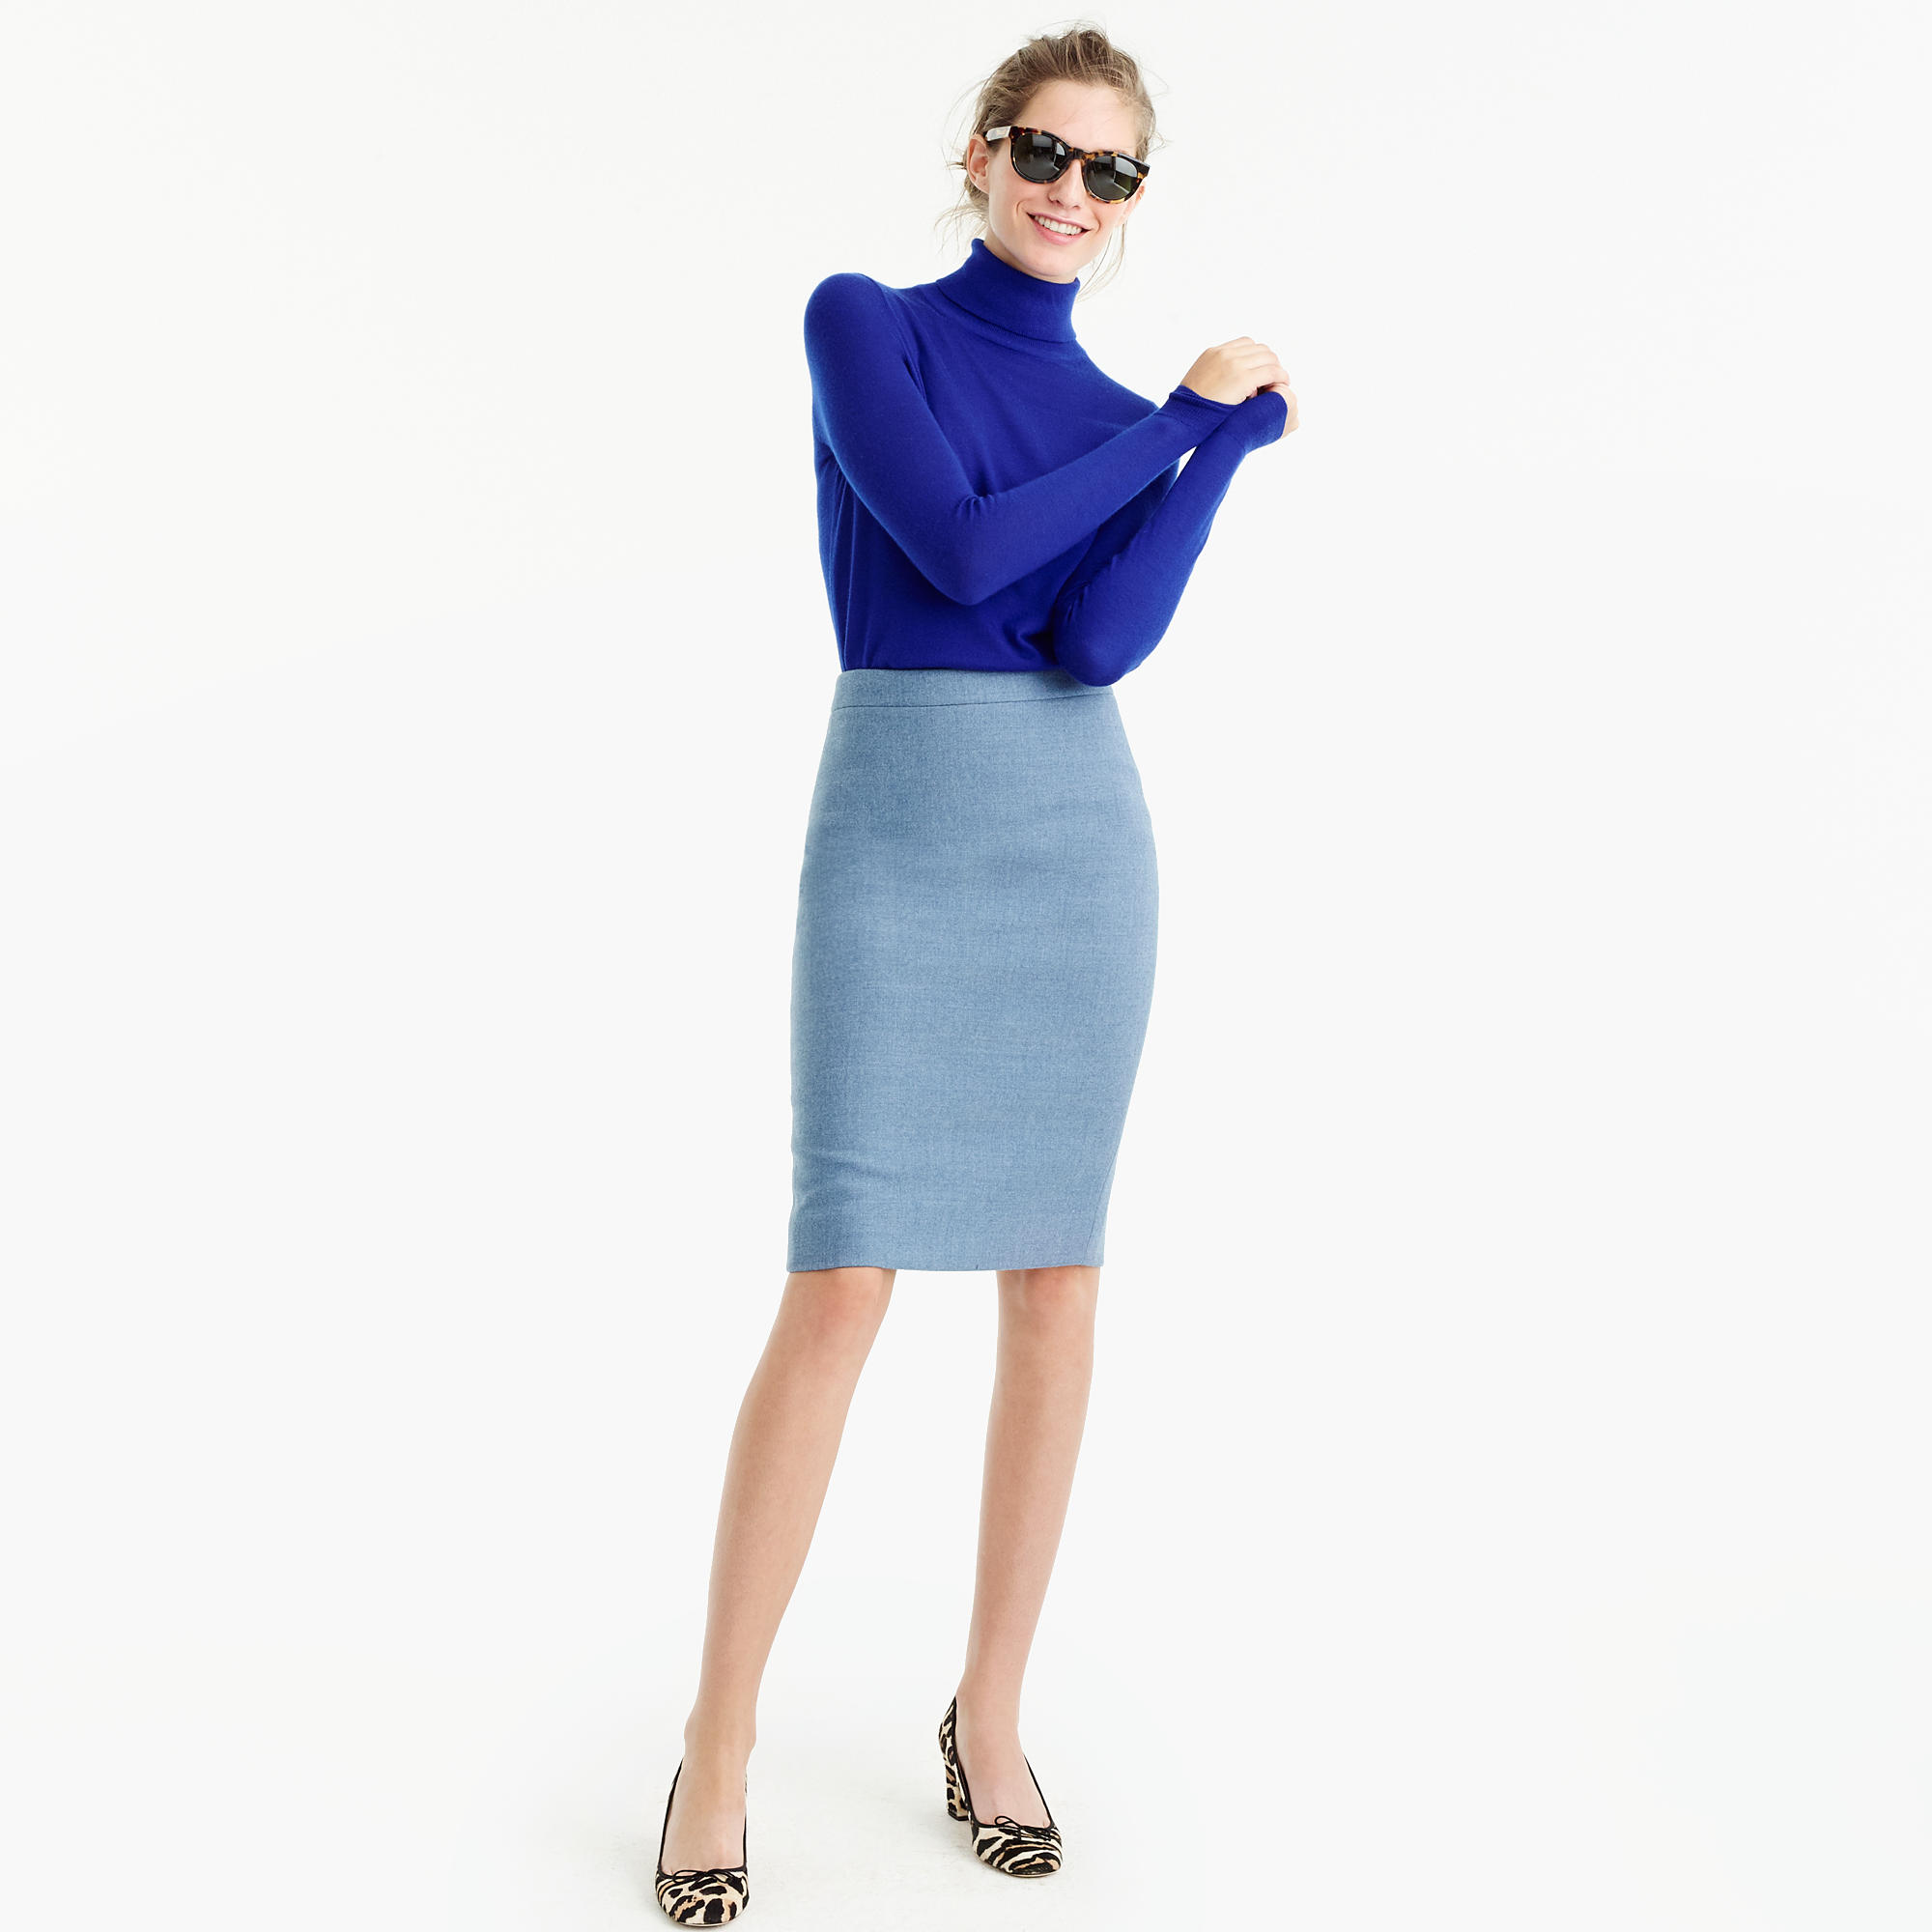 No. 2 Pencil Skirt In Double-Serge Wool : Women's Skirts | J.Crew